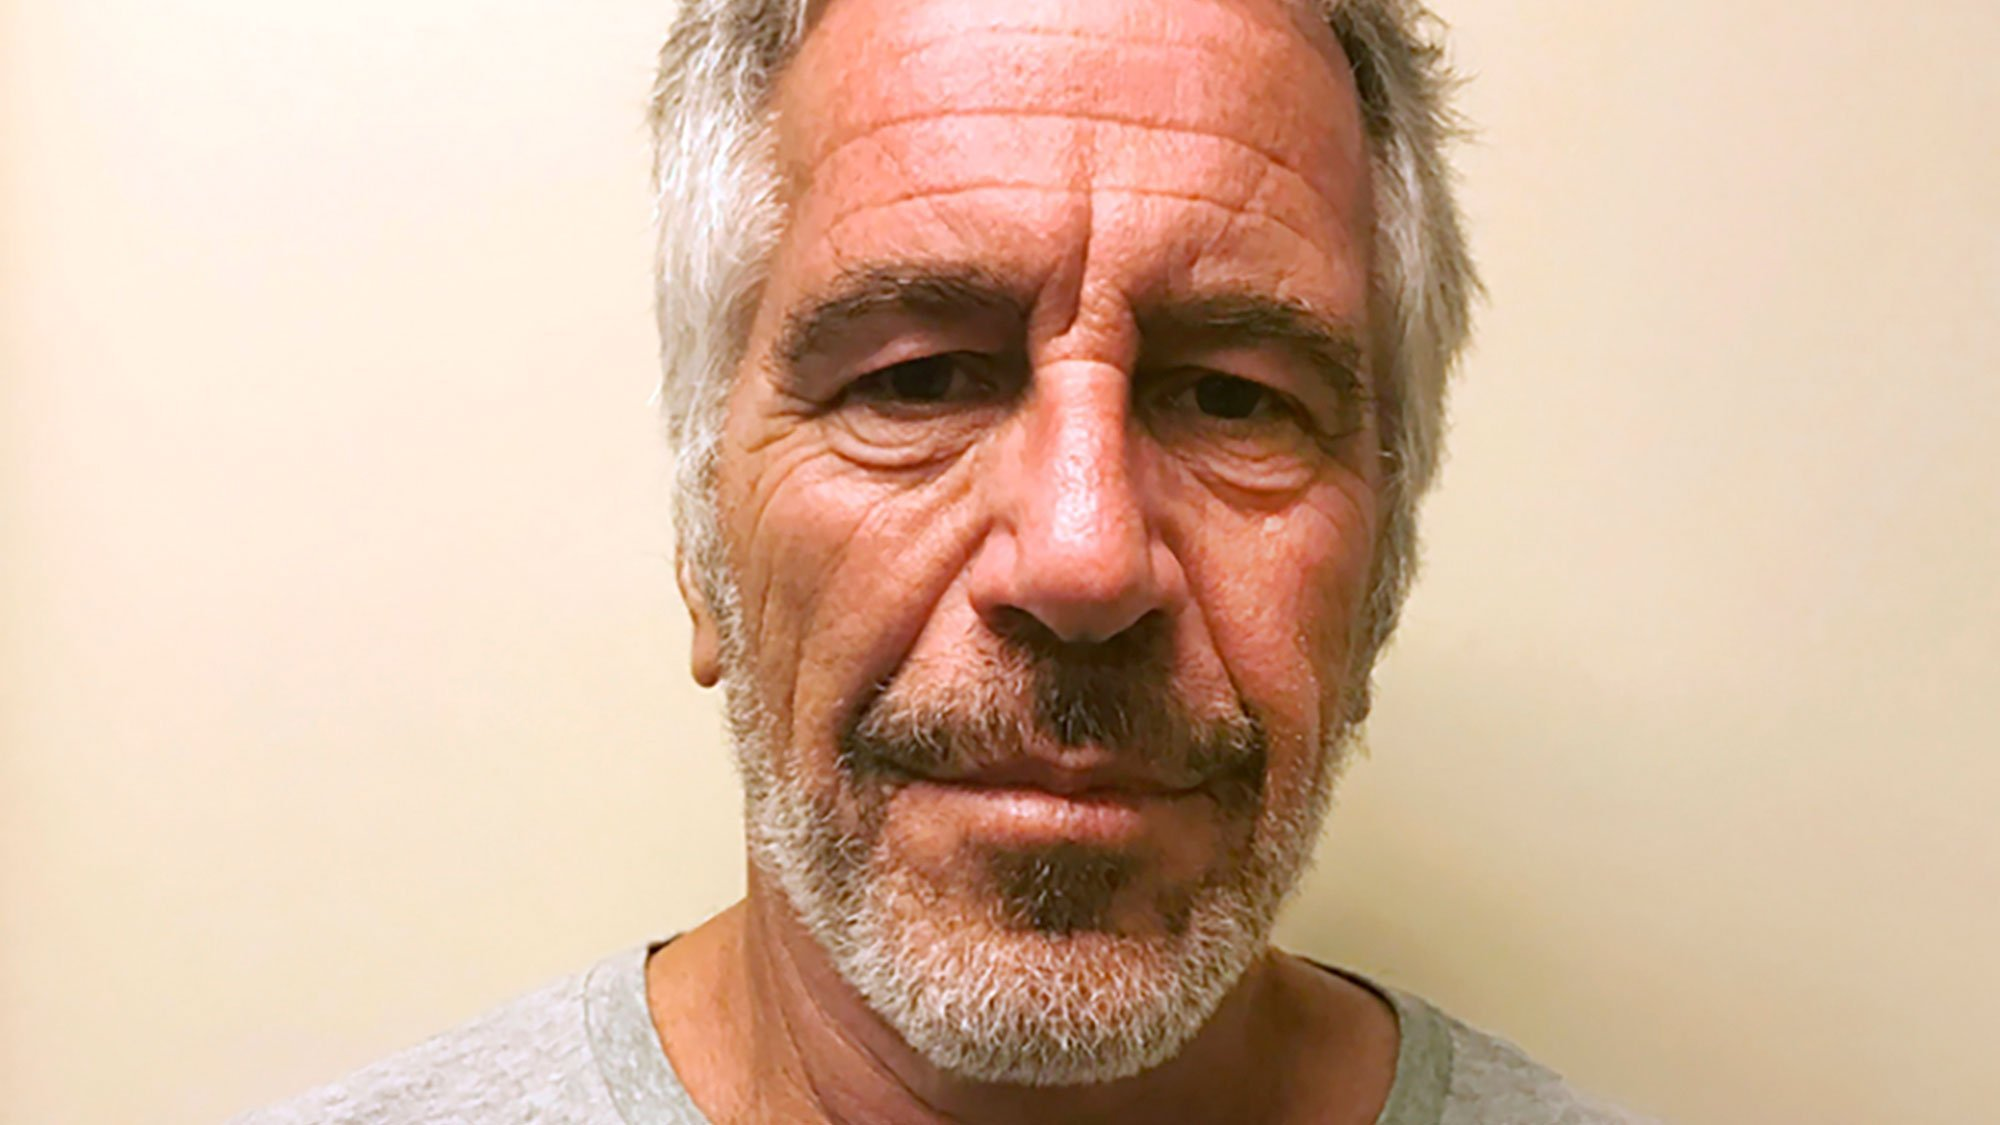 New lawsuit alleges Jeffrey Epstein 'routinely abused and exploited' victim when she was 14 years old